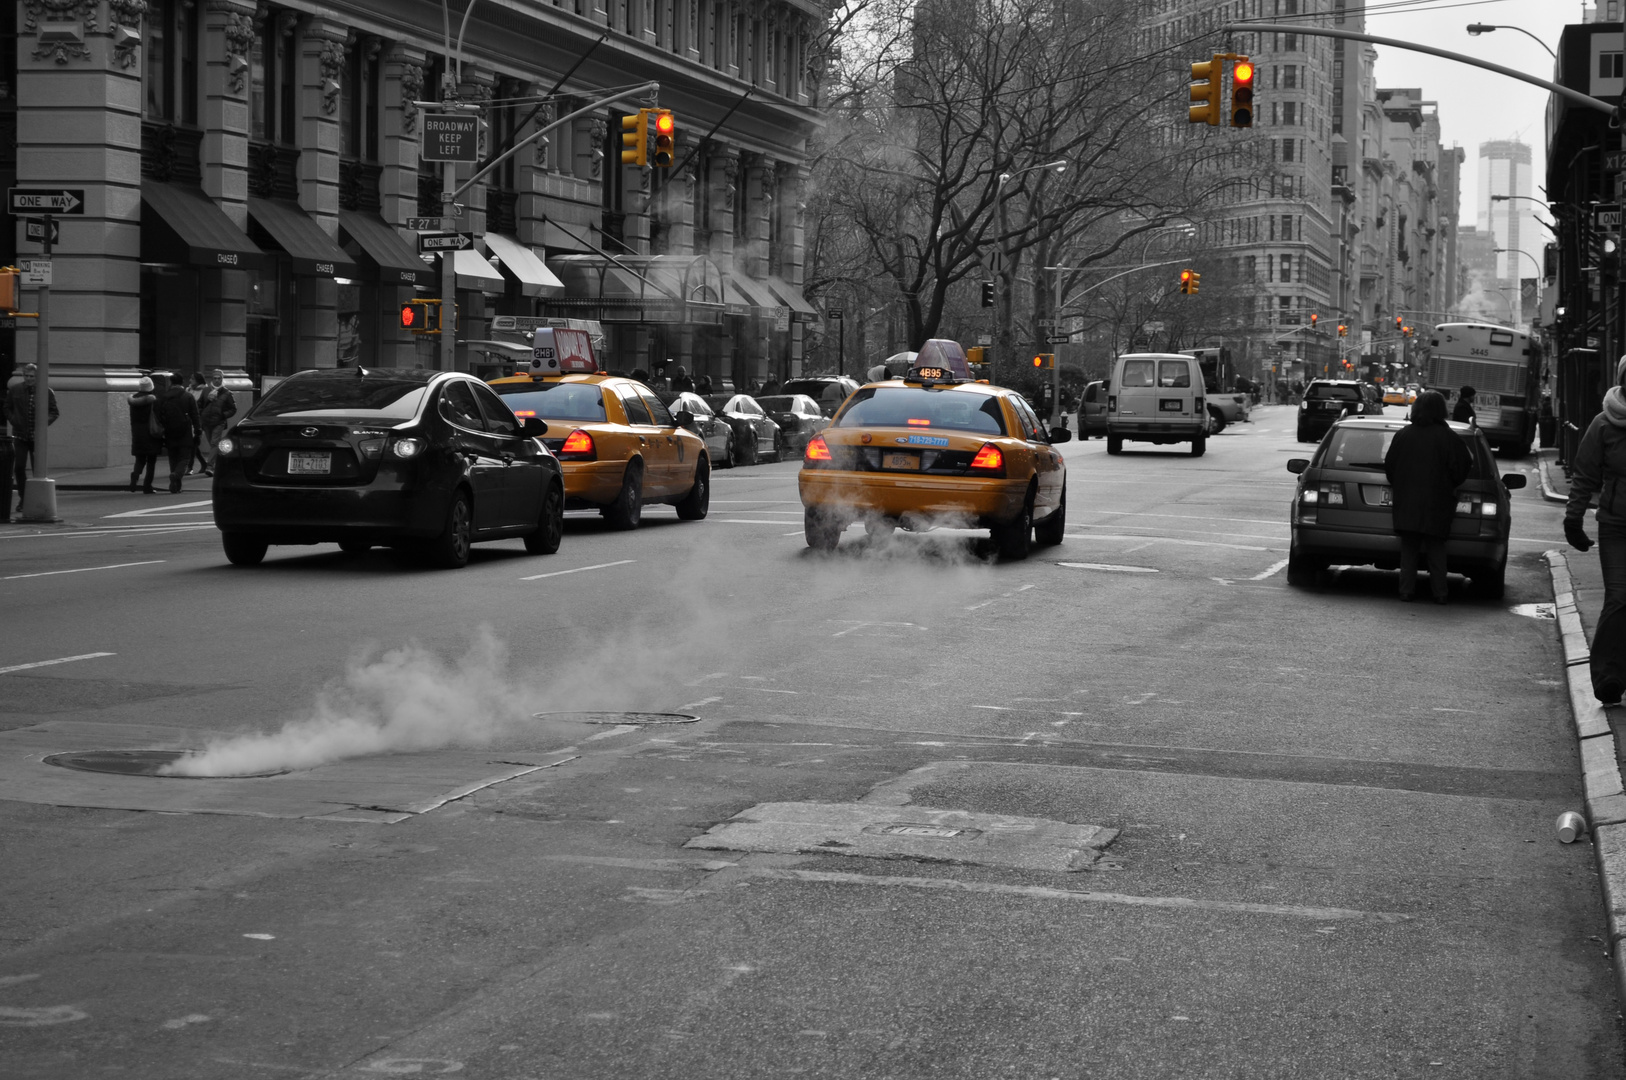 New York City - NYC Taxi - Traffic lights